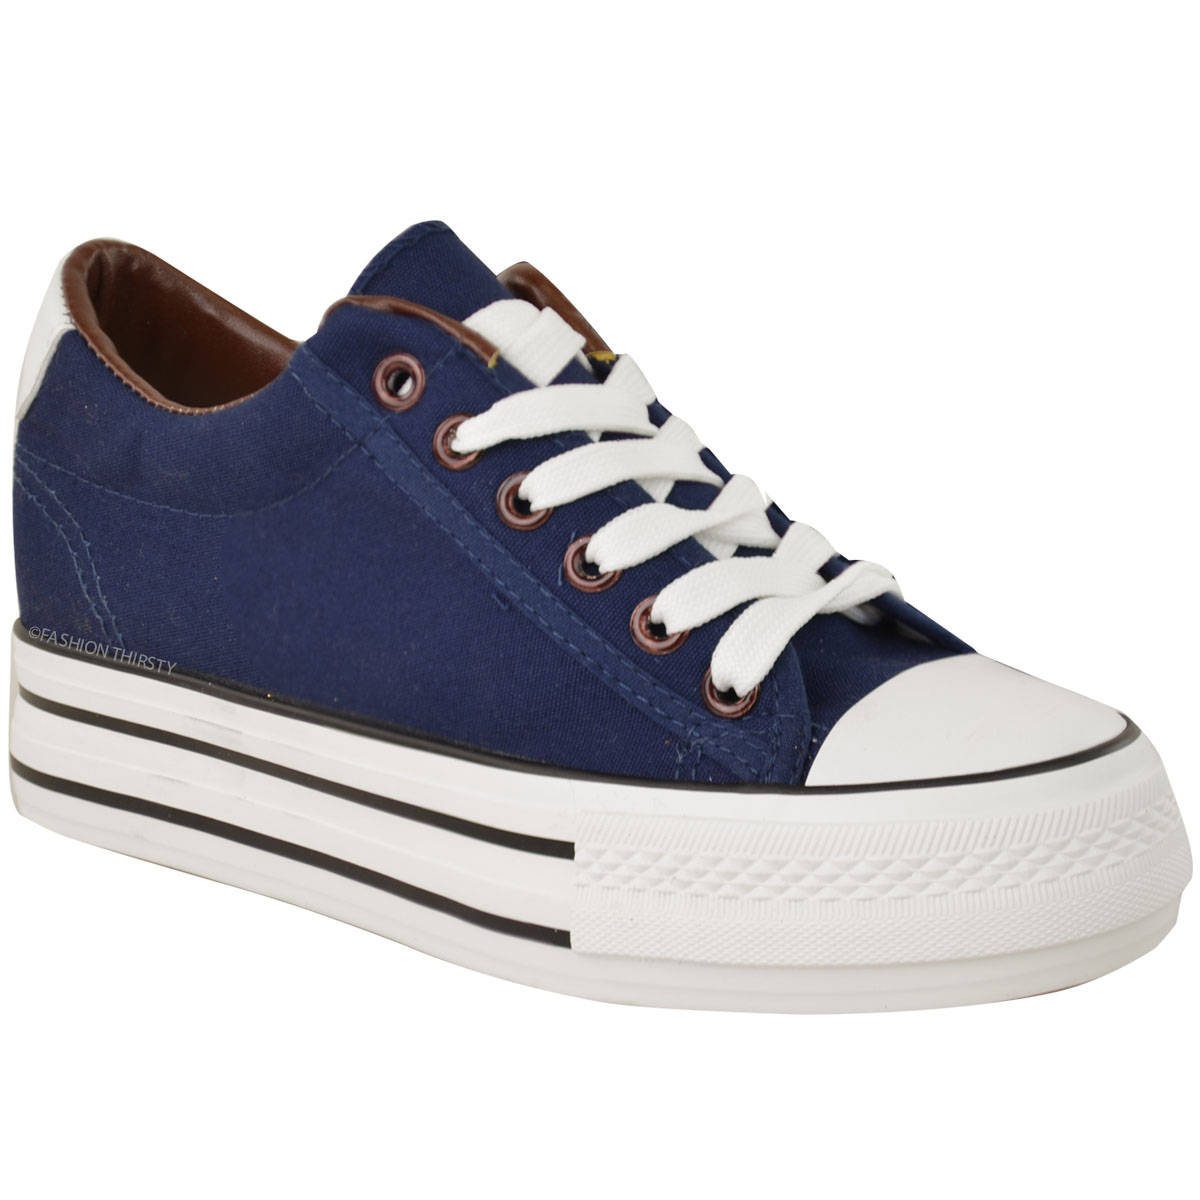 Shop for womens canvas shoes online at Target. Free shipping on purchases over $35 and save 5% every day with your Target REDcard.